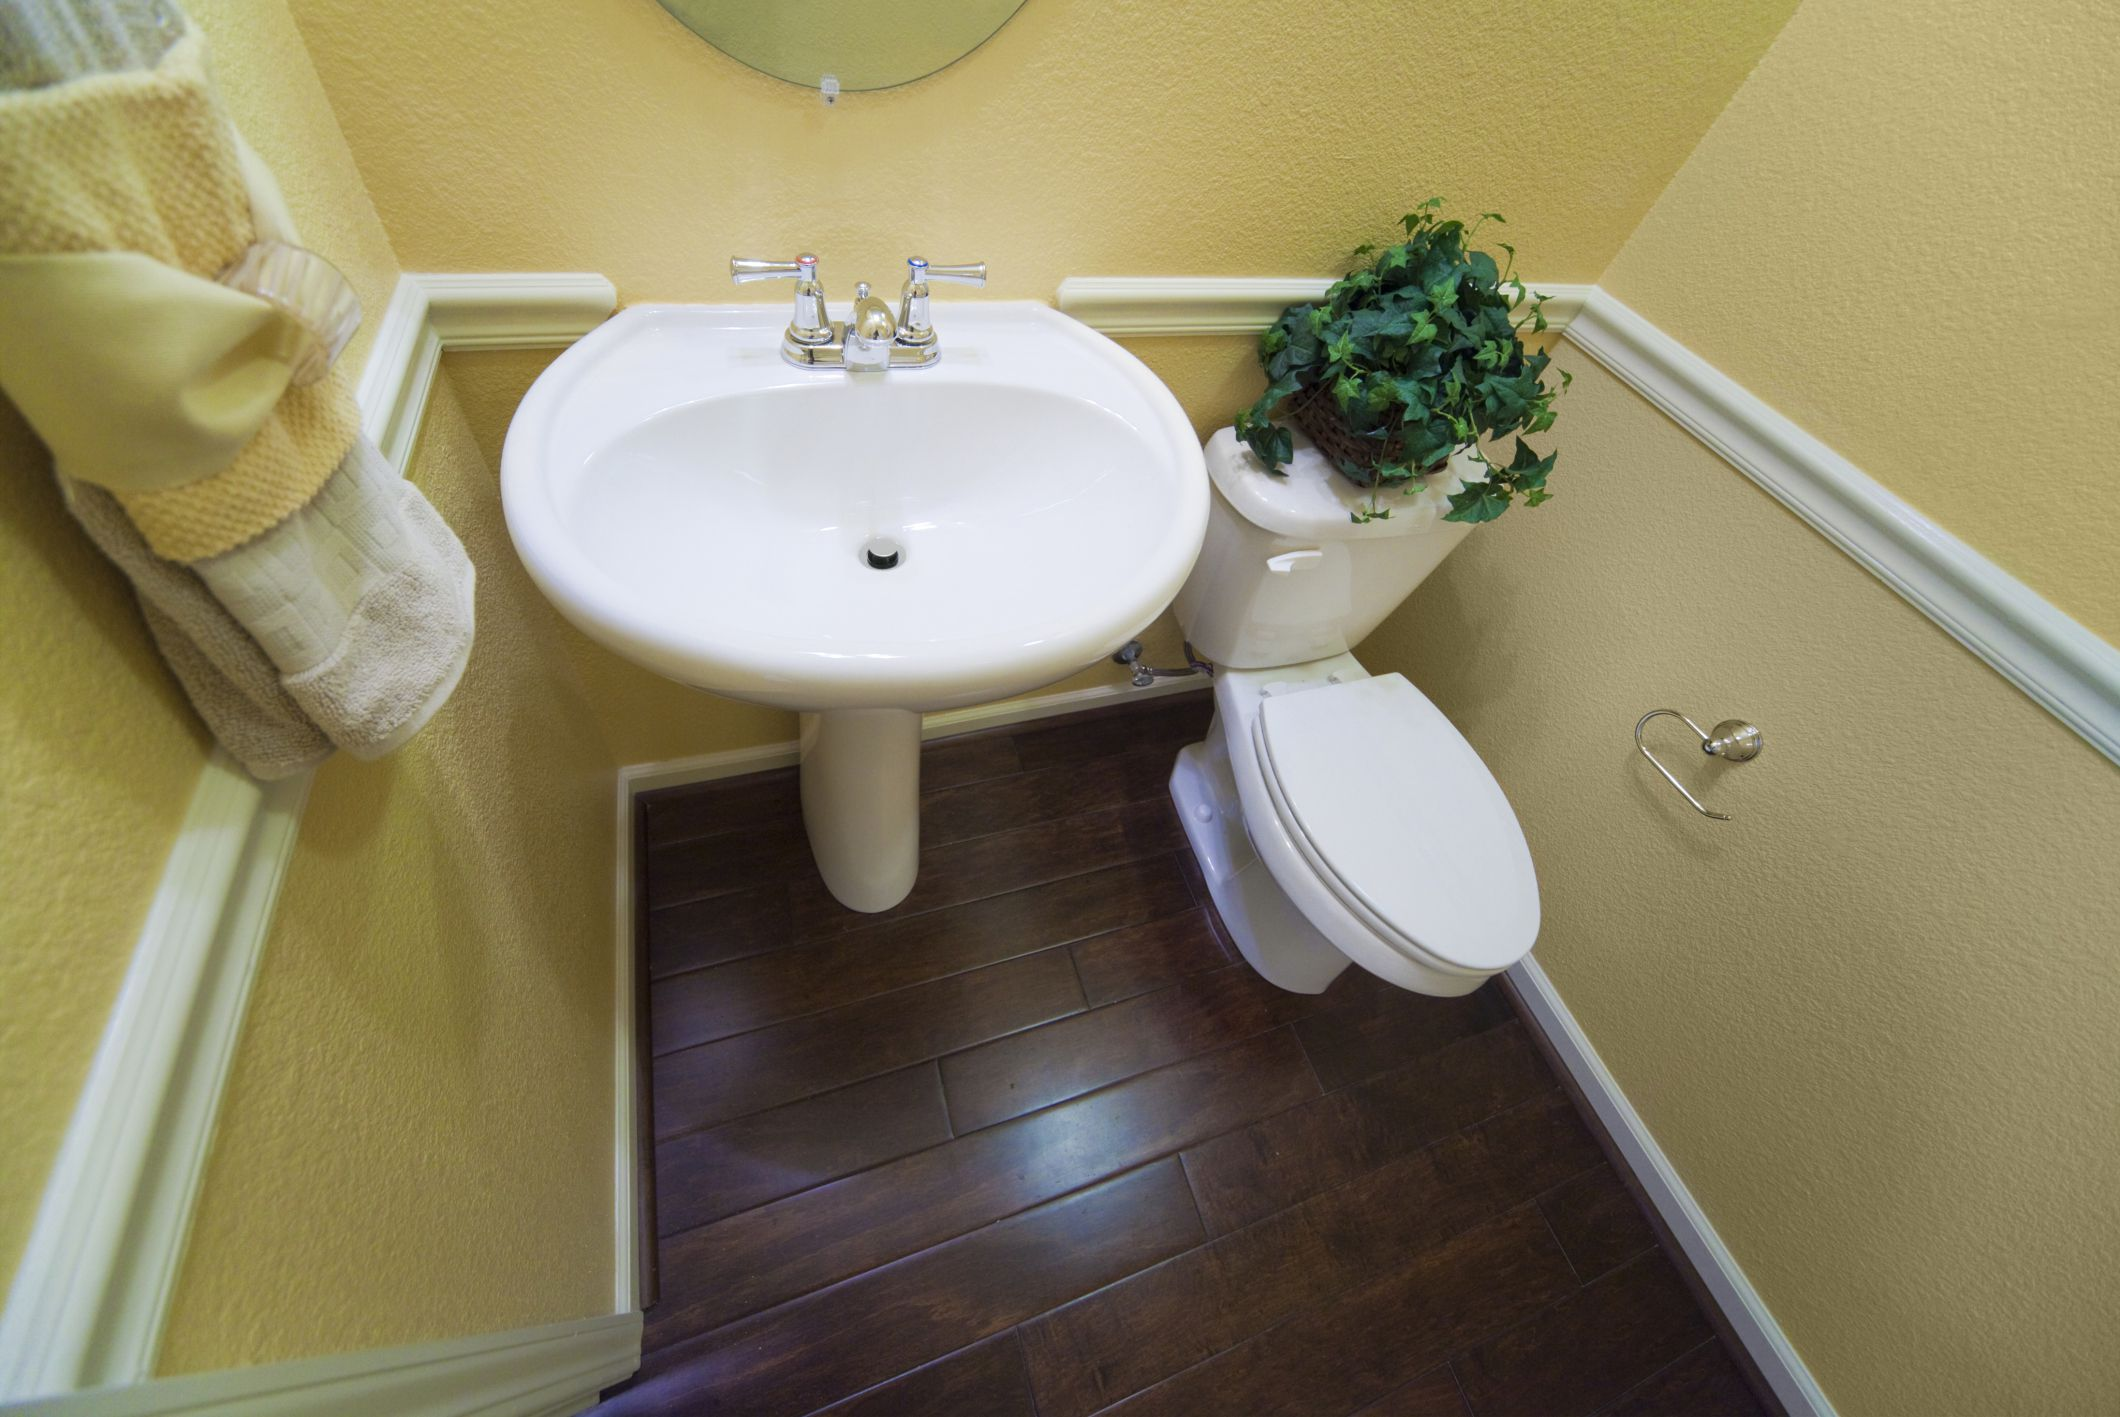 Bathroom Space Planning Guidelines and Practices